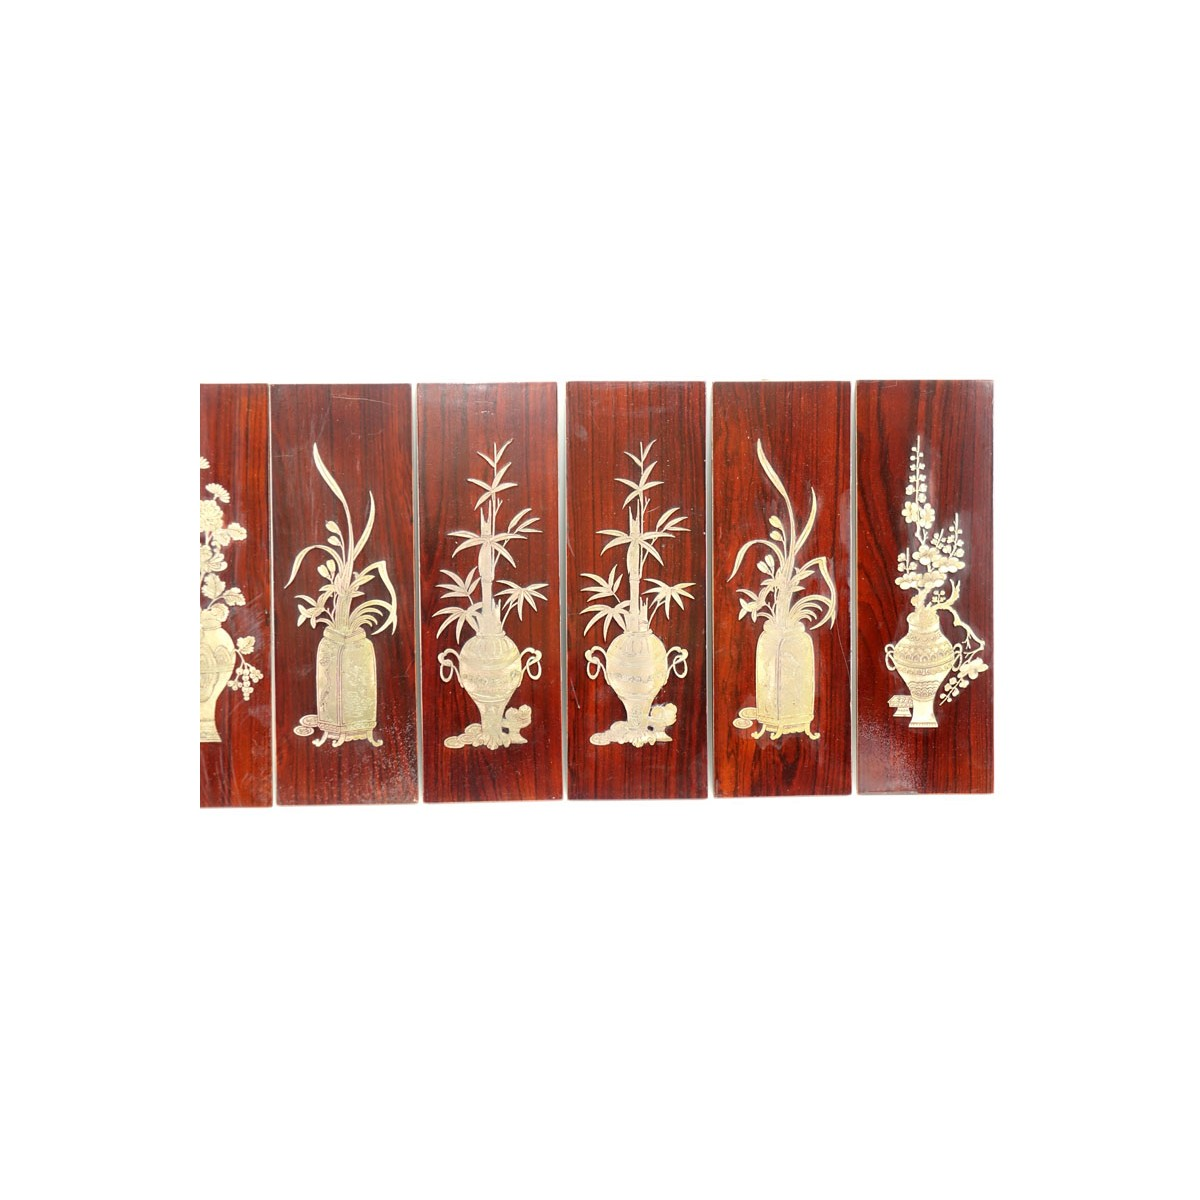 Set of Six (6) Vintage Asian Decorative Wood Panels With Inset Brass Flowers in urns motifs. Unmark